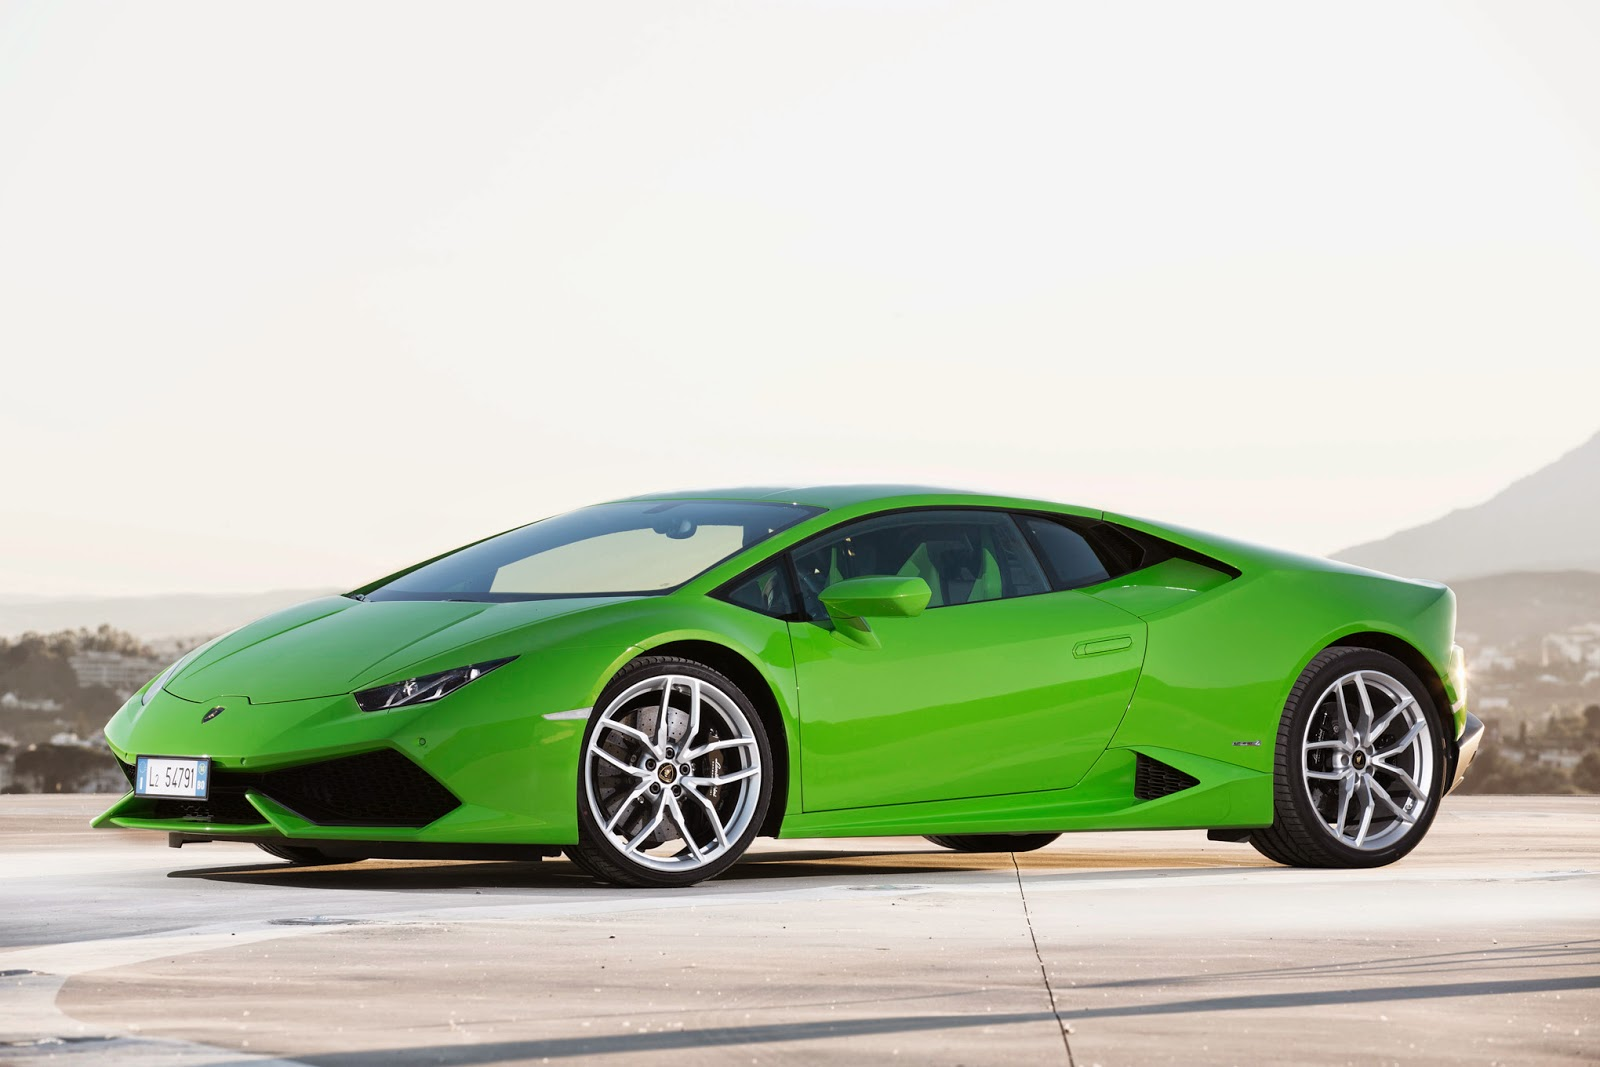 lamborghini huracan 2015 price dubai 2015 lamborghini huracan dubai united arab emirates. Black Bedroom Furniture Sets. Home Design Ideas